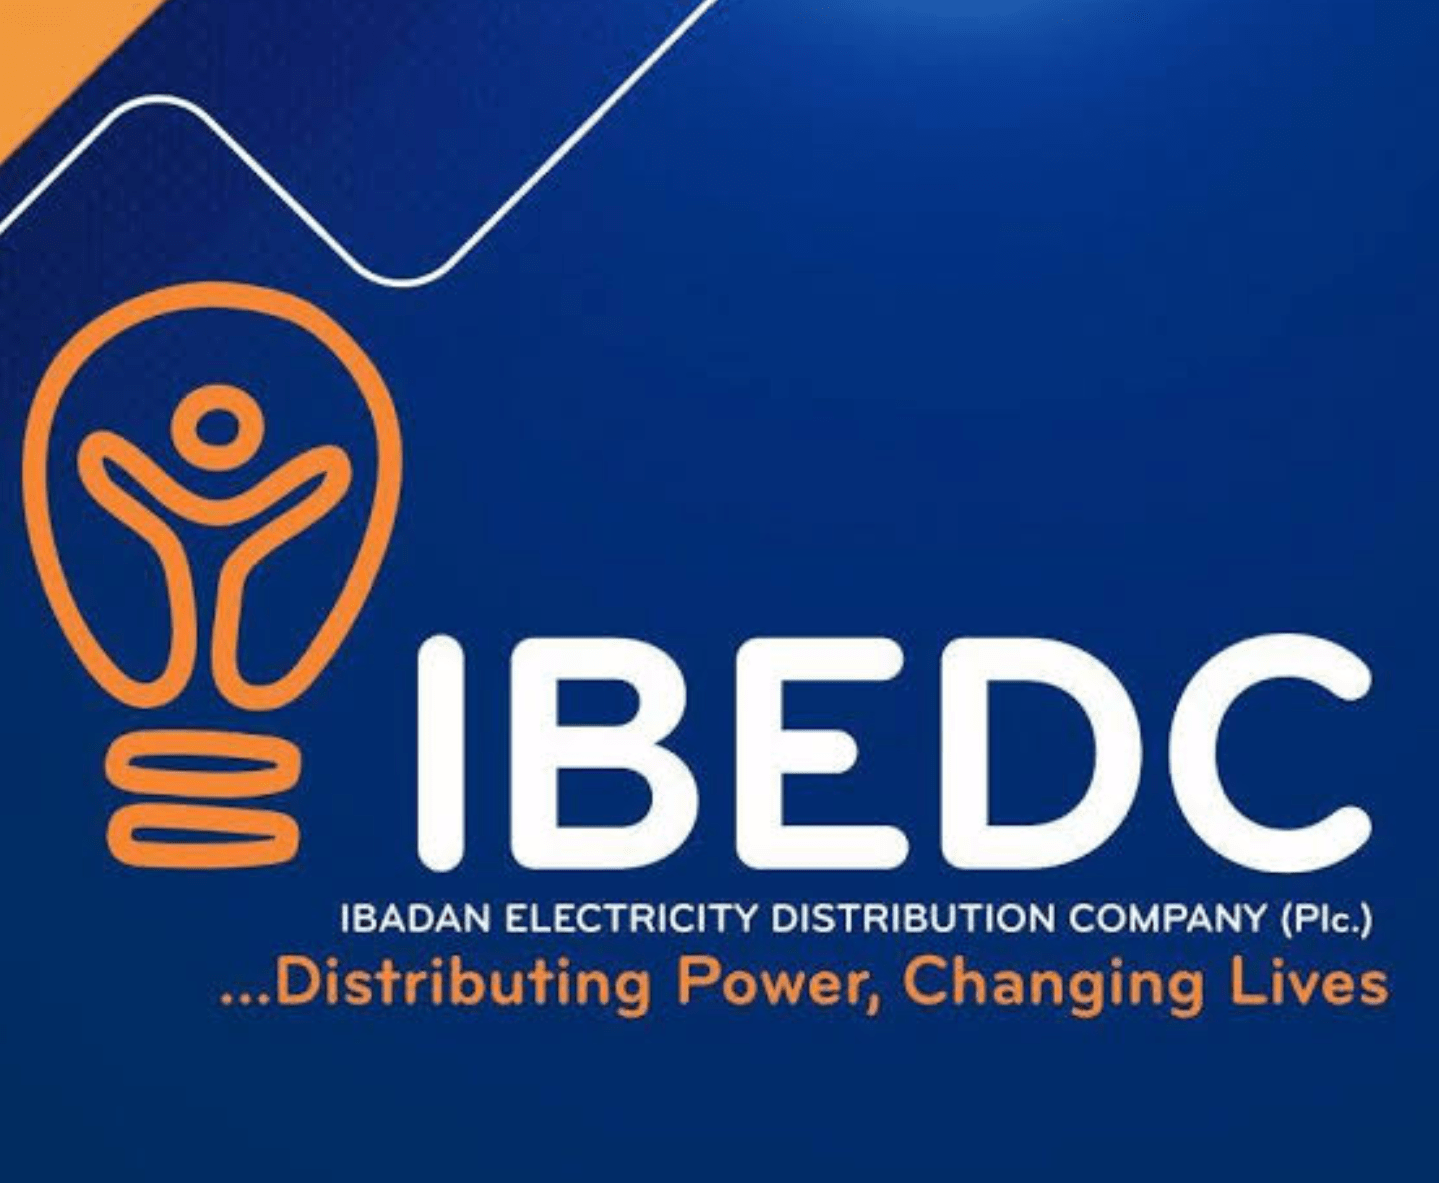 Ibedc Gets Awards For Corporate Excellence